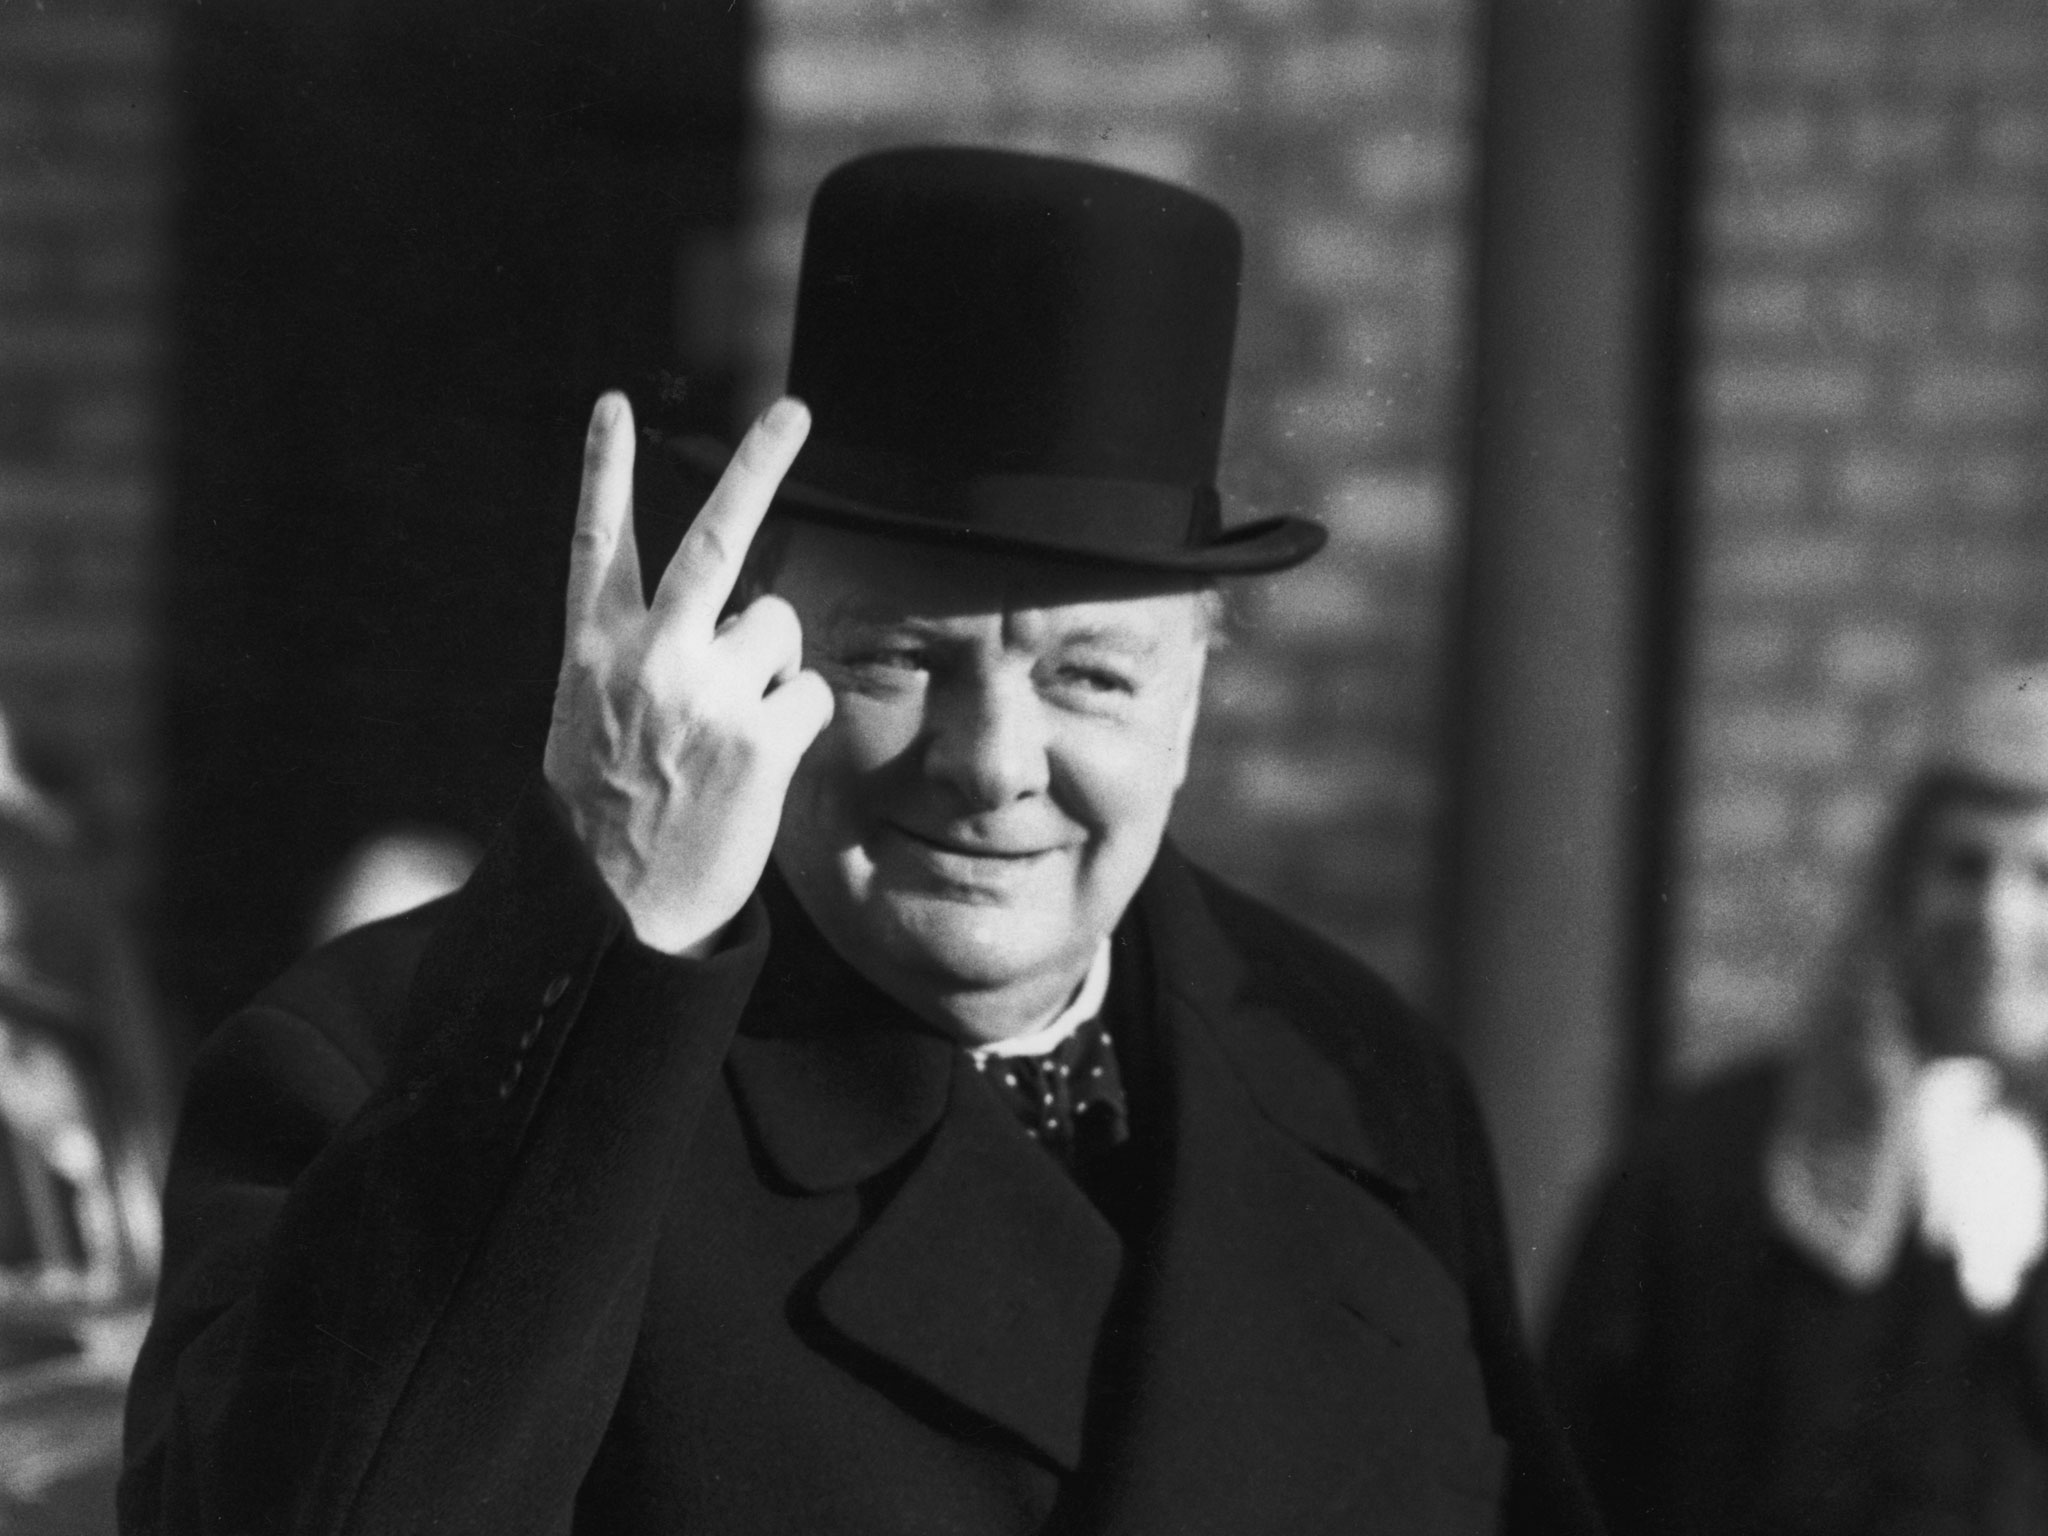 'My dear you are ugly, but tomorrow I shall be sober and you will still be ugly': Winston Churchill tops poll of history's funniest insults - Home News - UK ...